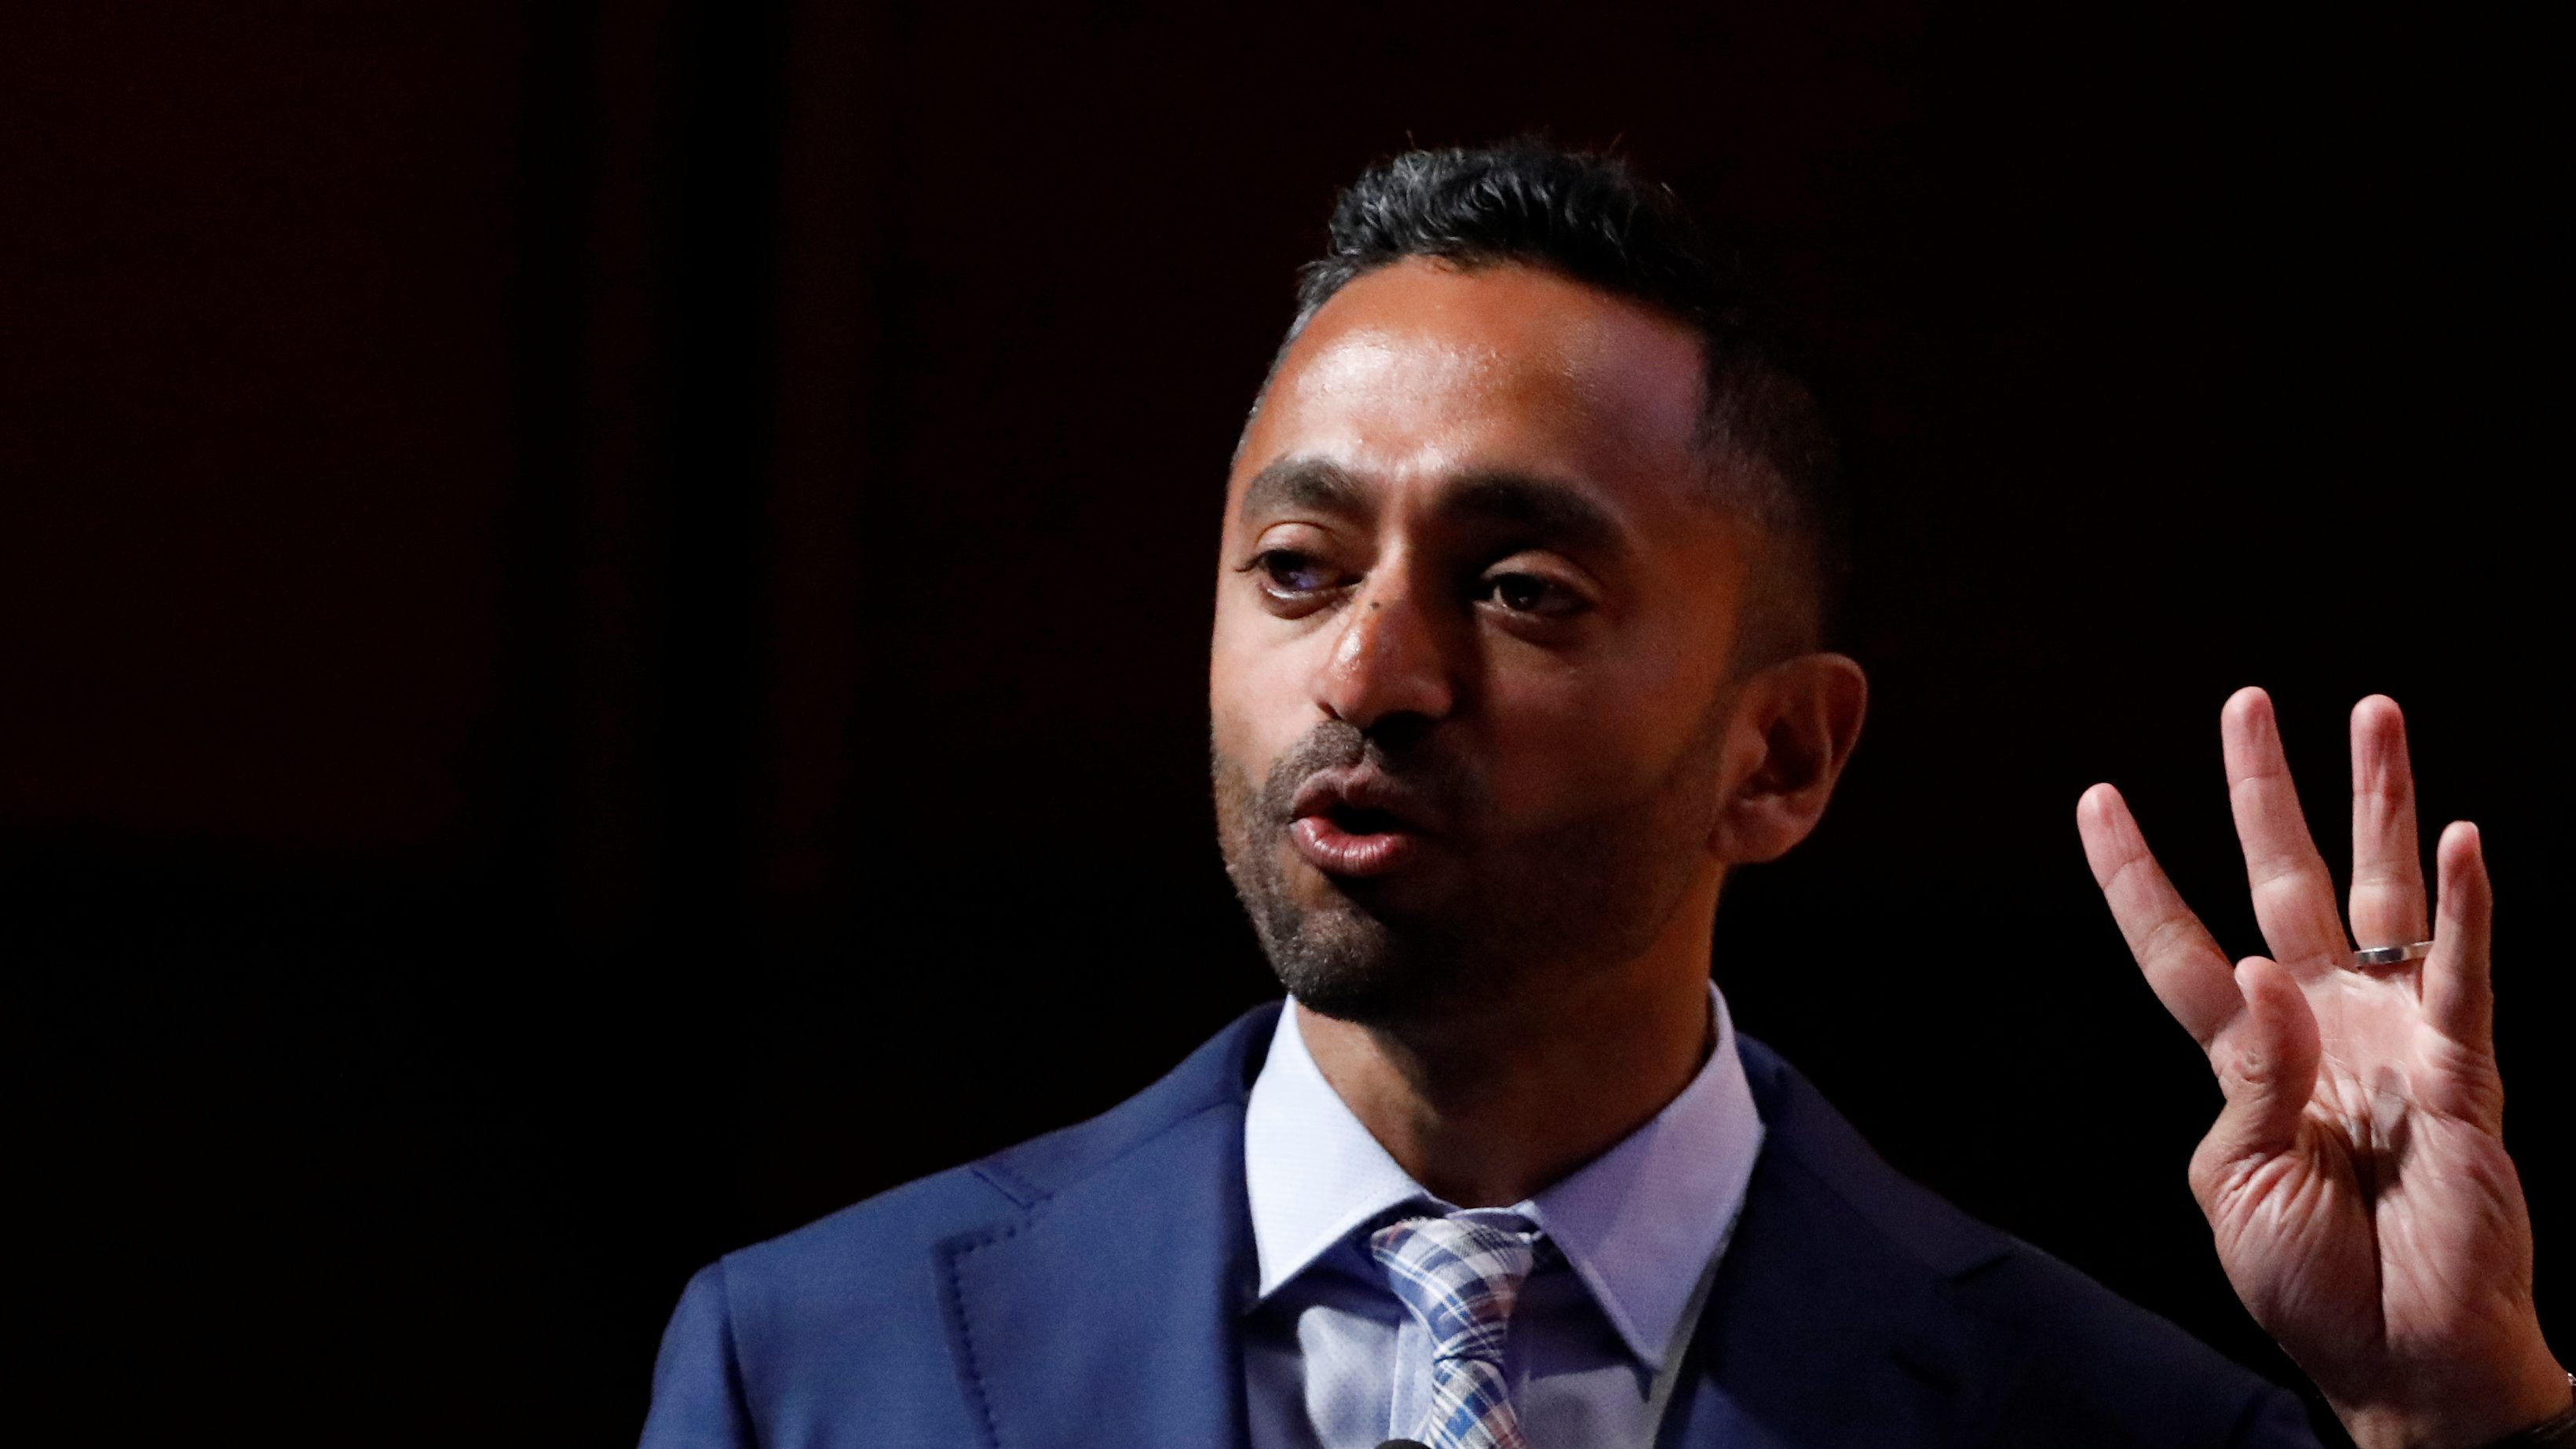 Chamath Palihapitiya, Founder and CEO of Social Capital, speaks during the Sohn Investment Conference in New York City, U.S., May 8, 2017. REUTERS/Brendan McDermid - RC1A614F8BD0